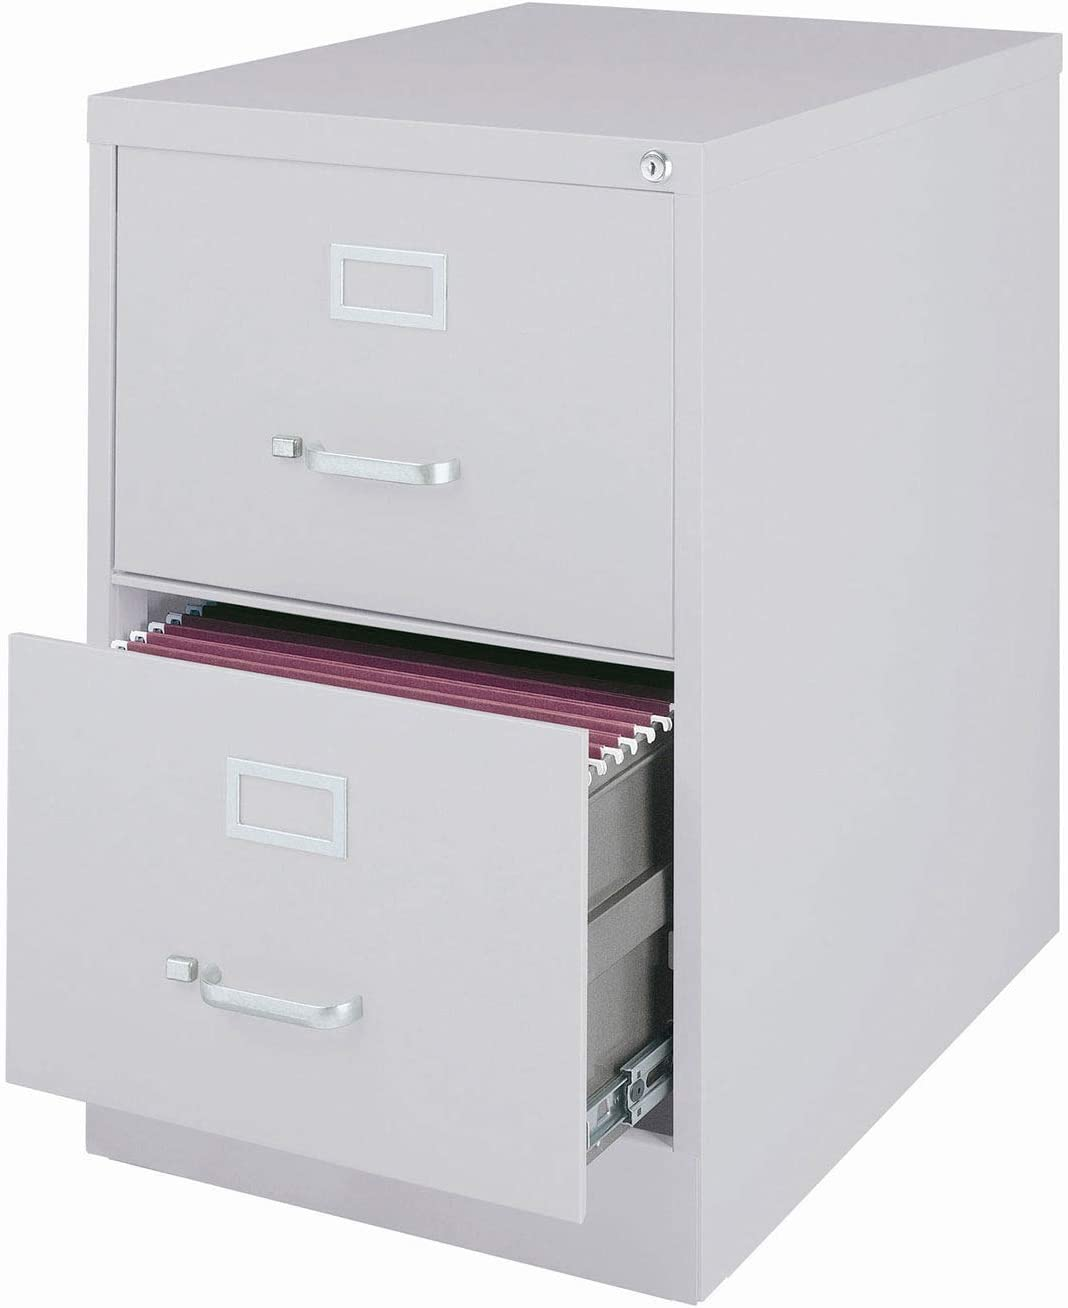 "26.5"" Deep Commercial 2 Drawer Legal Size High Side Vertical File Cabinet Color: Light Gray"